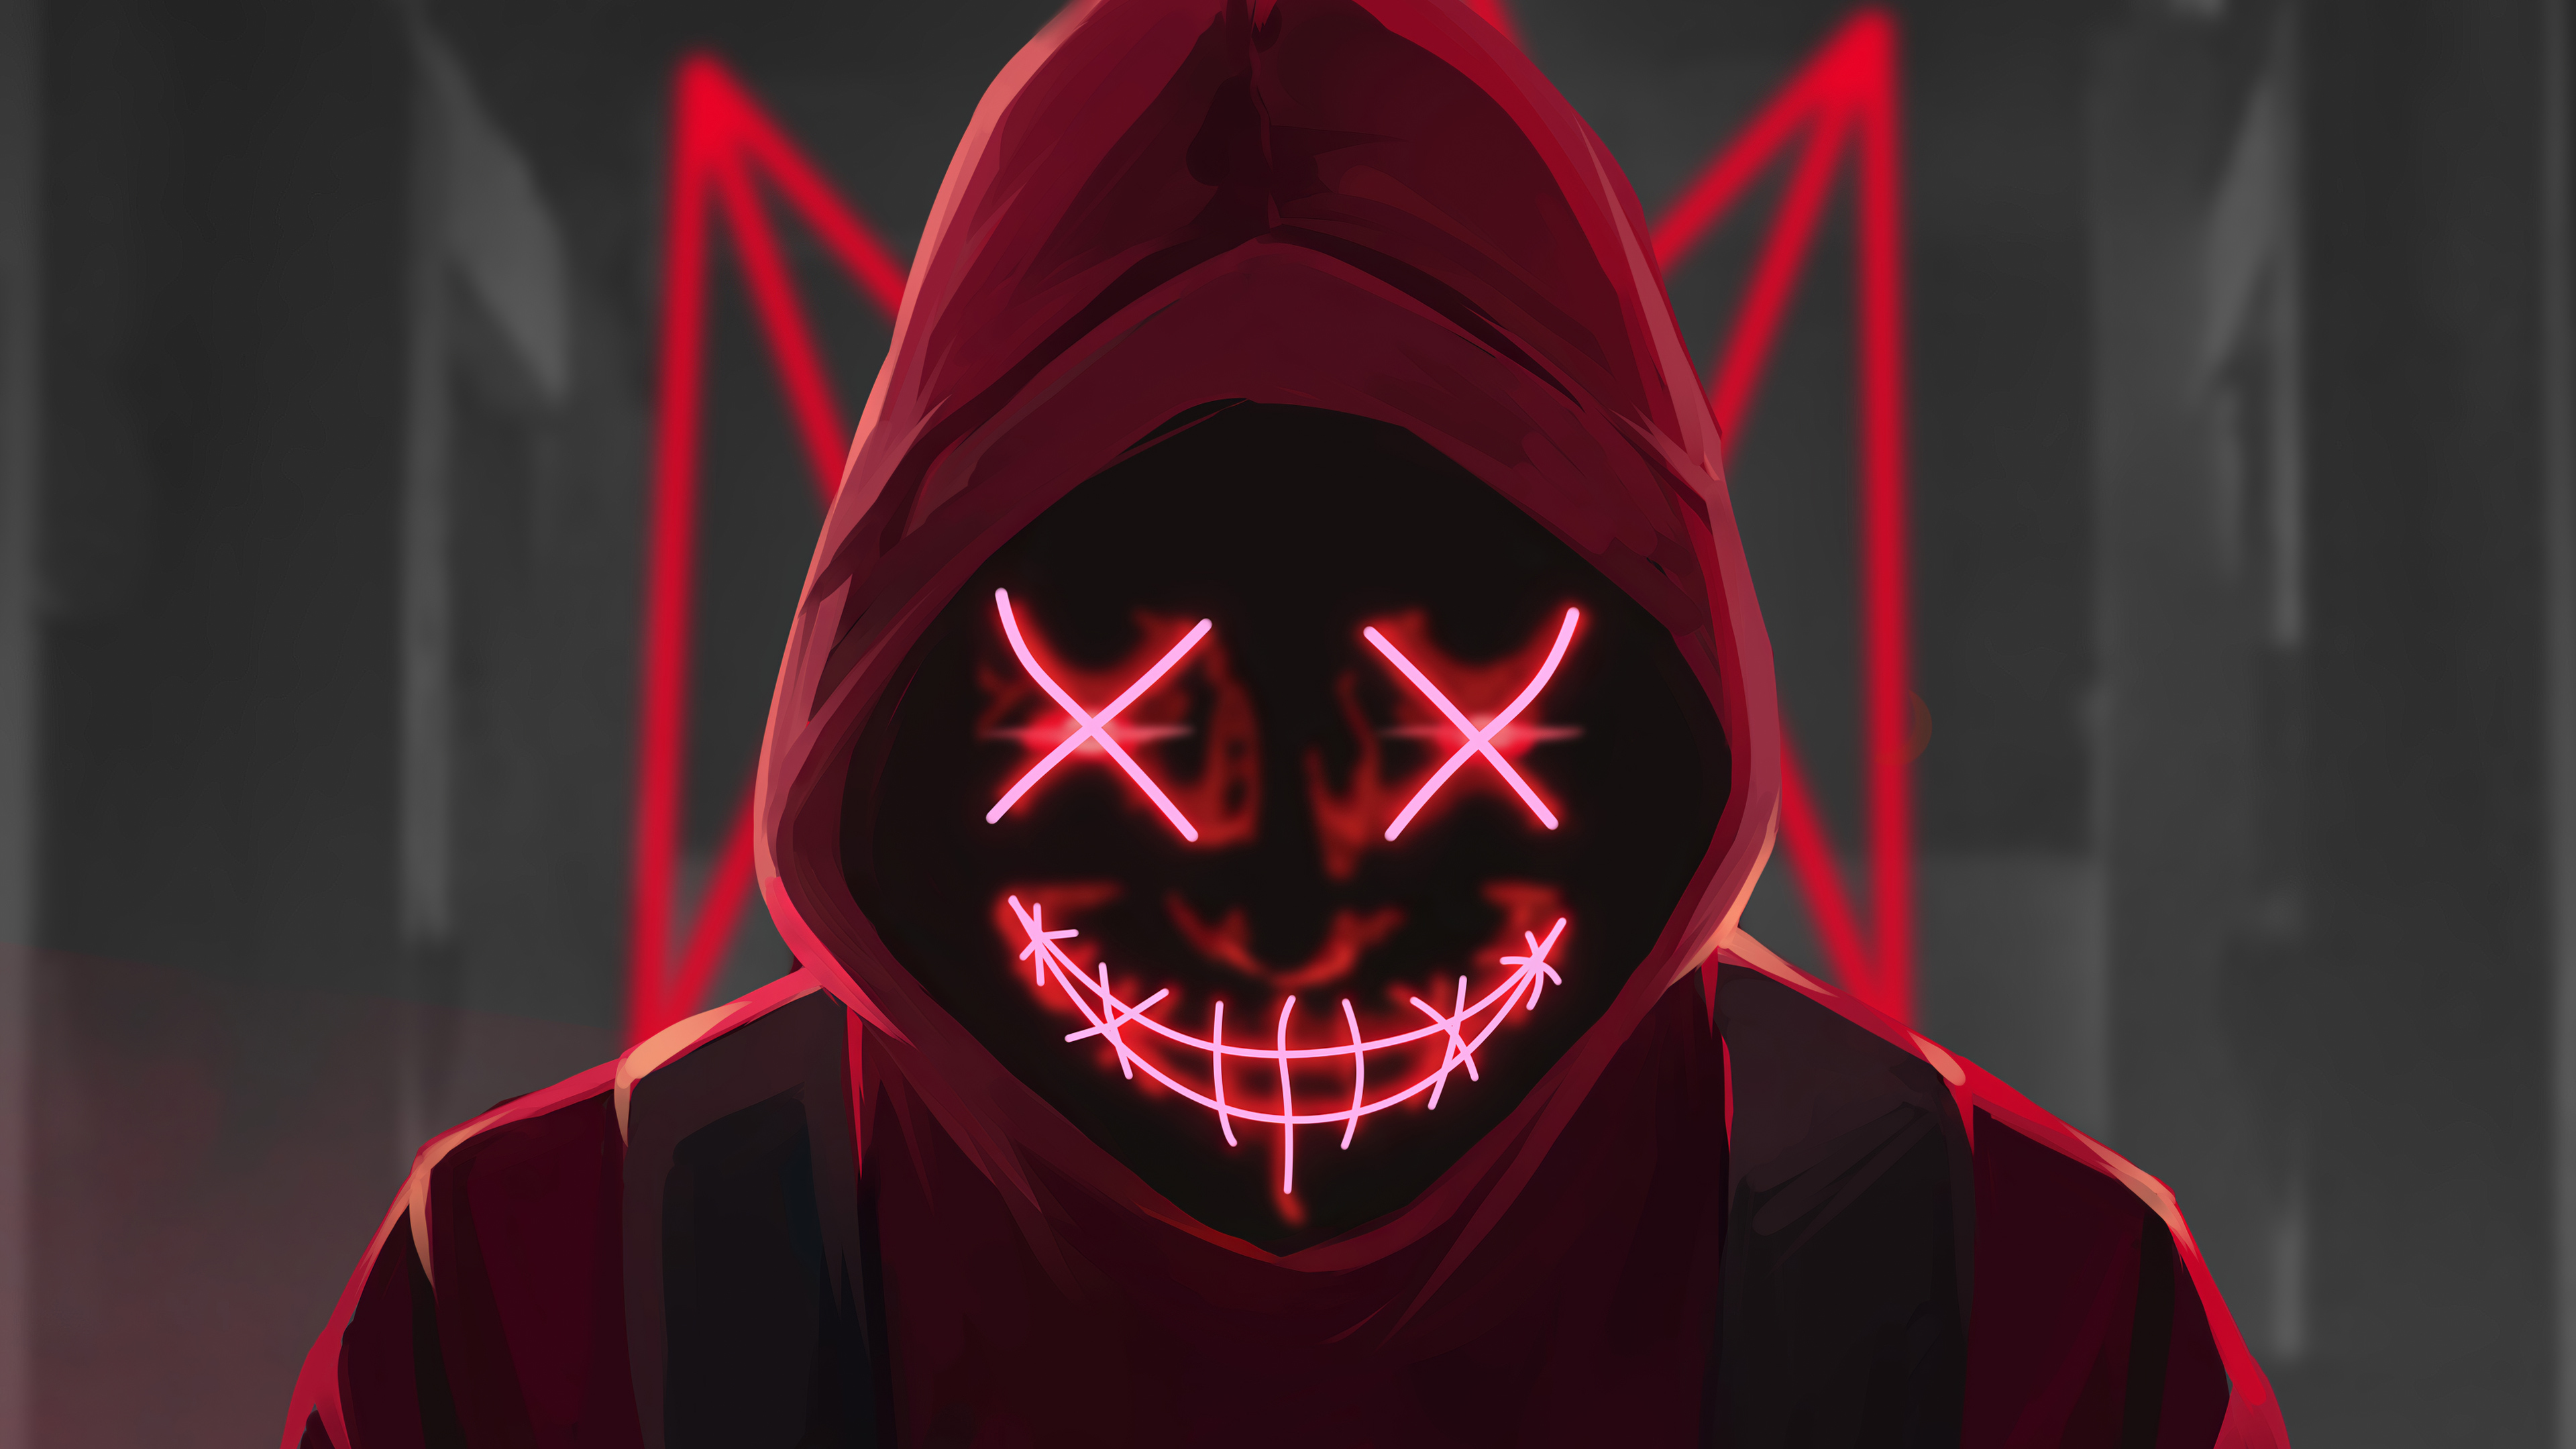 Red Mask Neon Eyes 4k Hd Artist 4k Wallpapers Images Backgrounds Photos And Pictures